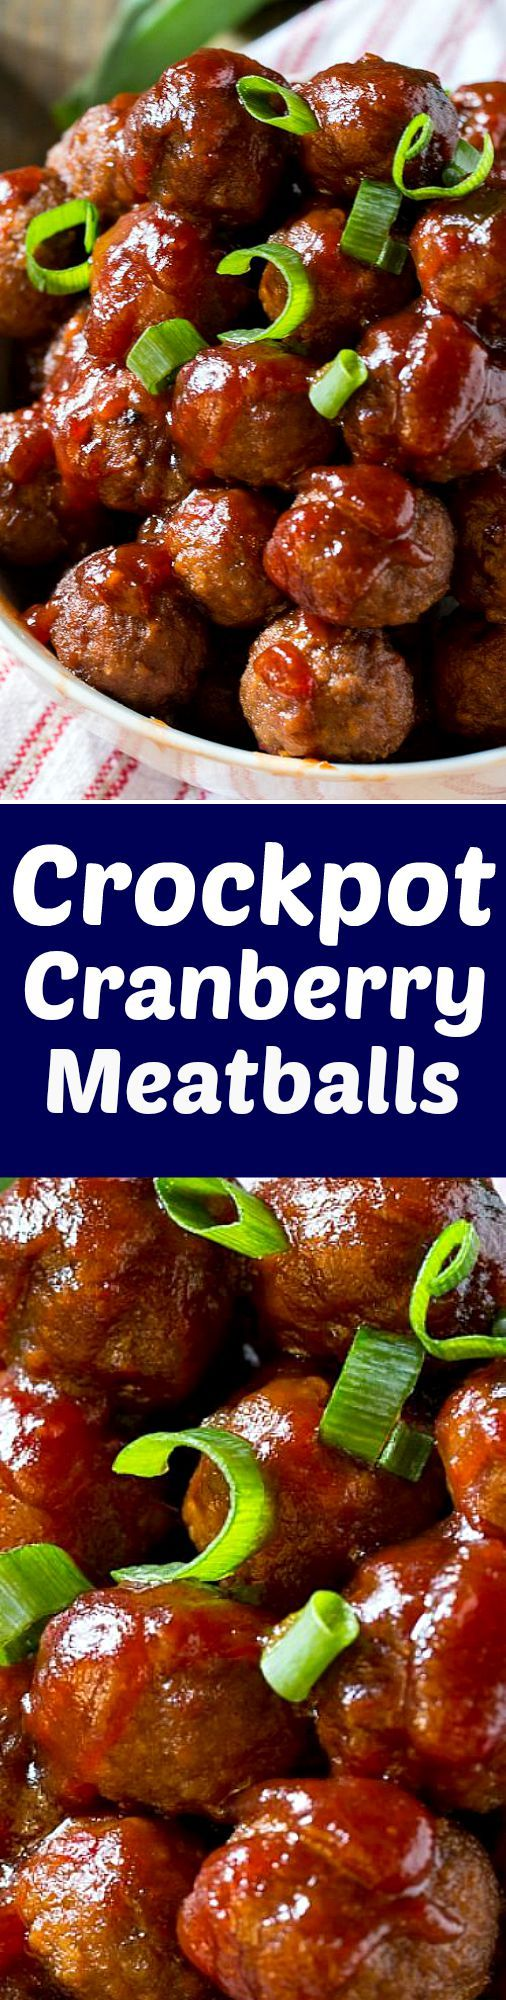 Crock Pot Cranberry Meatballs - super easy and only a few ingredients needed!